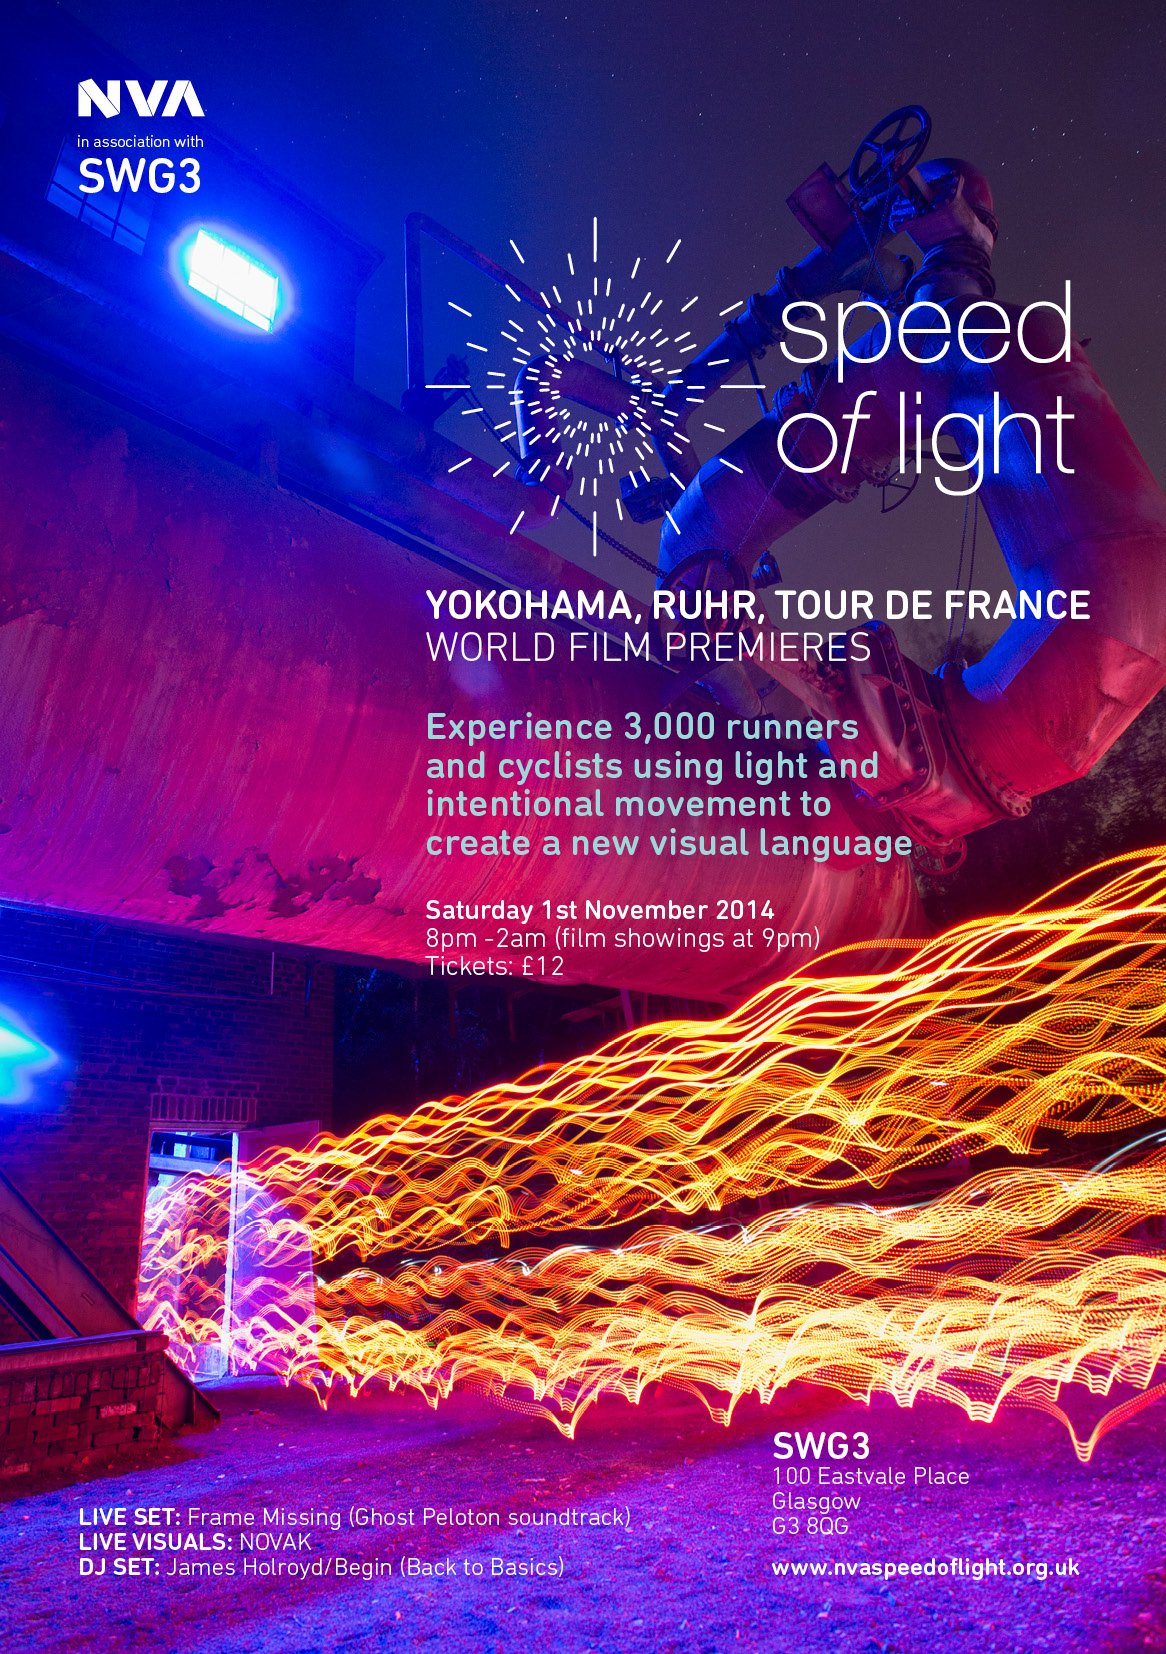 speed of light film premiere event flyer swg3